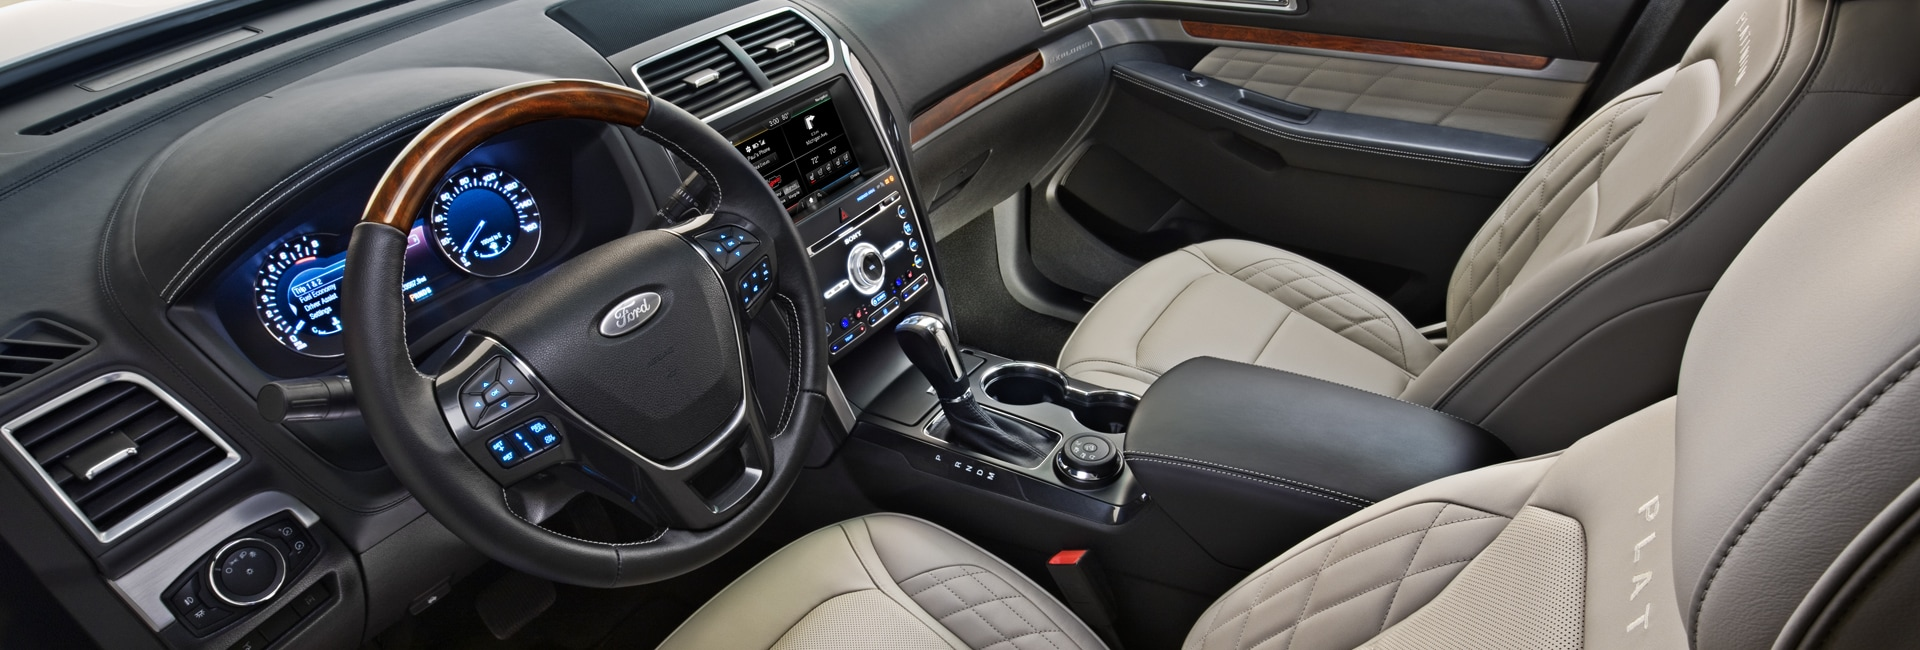 Ford Explorer Interior Vehicle Features